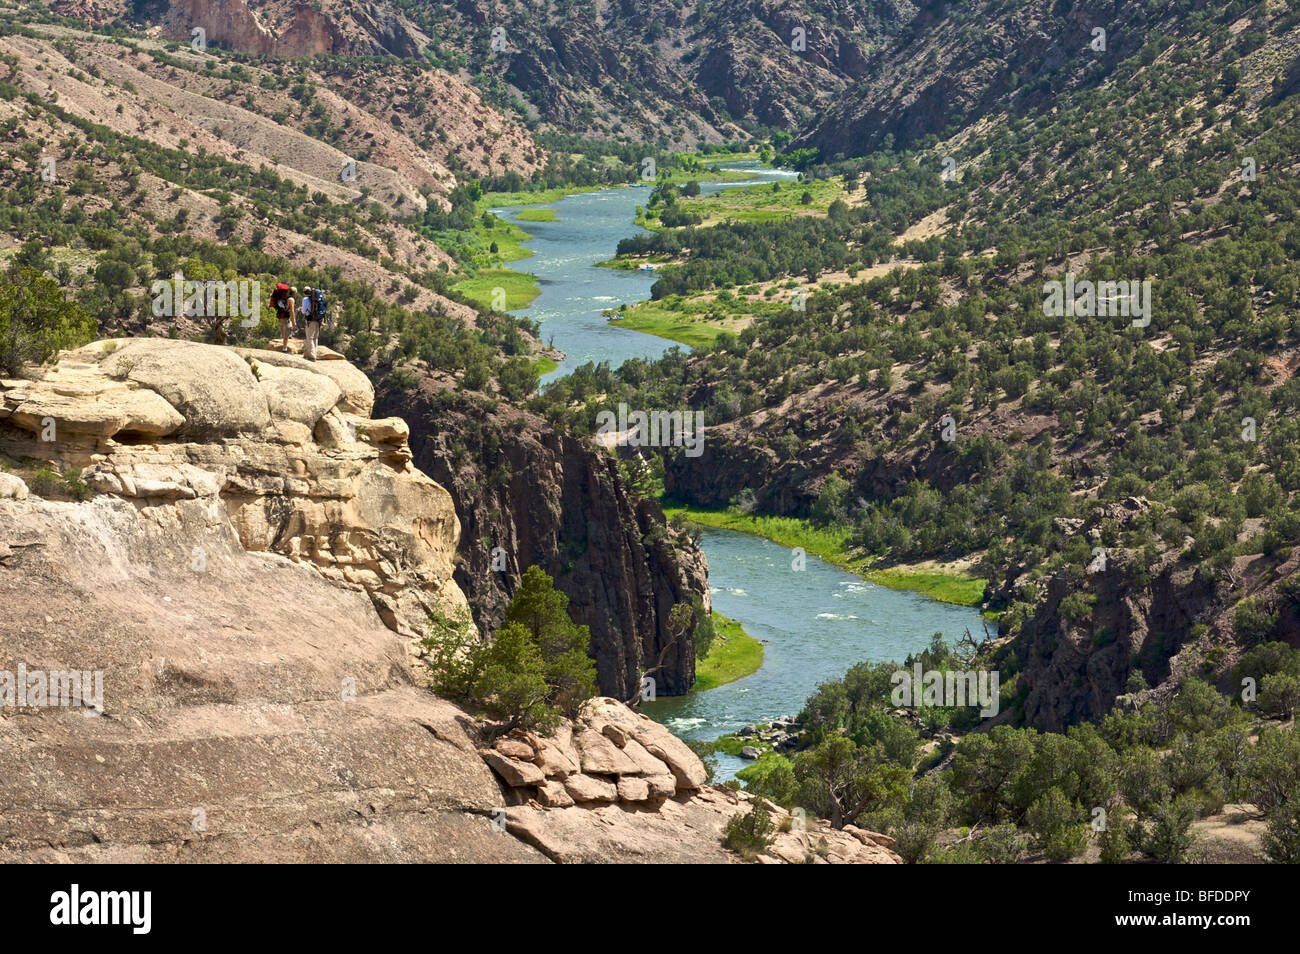 Two men look out over a gorge in Colorado. - Stock Image